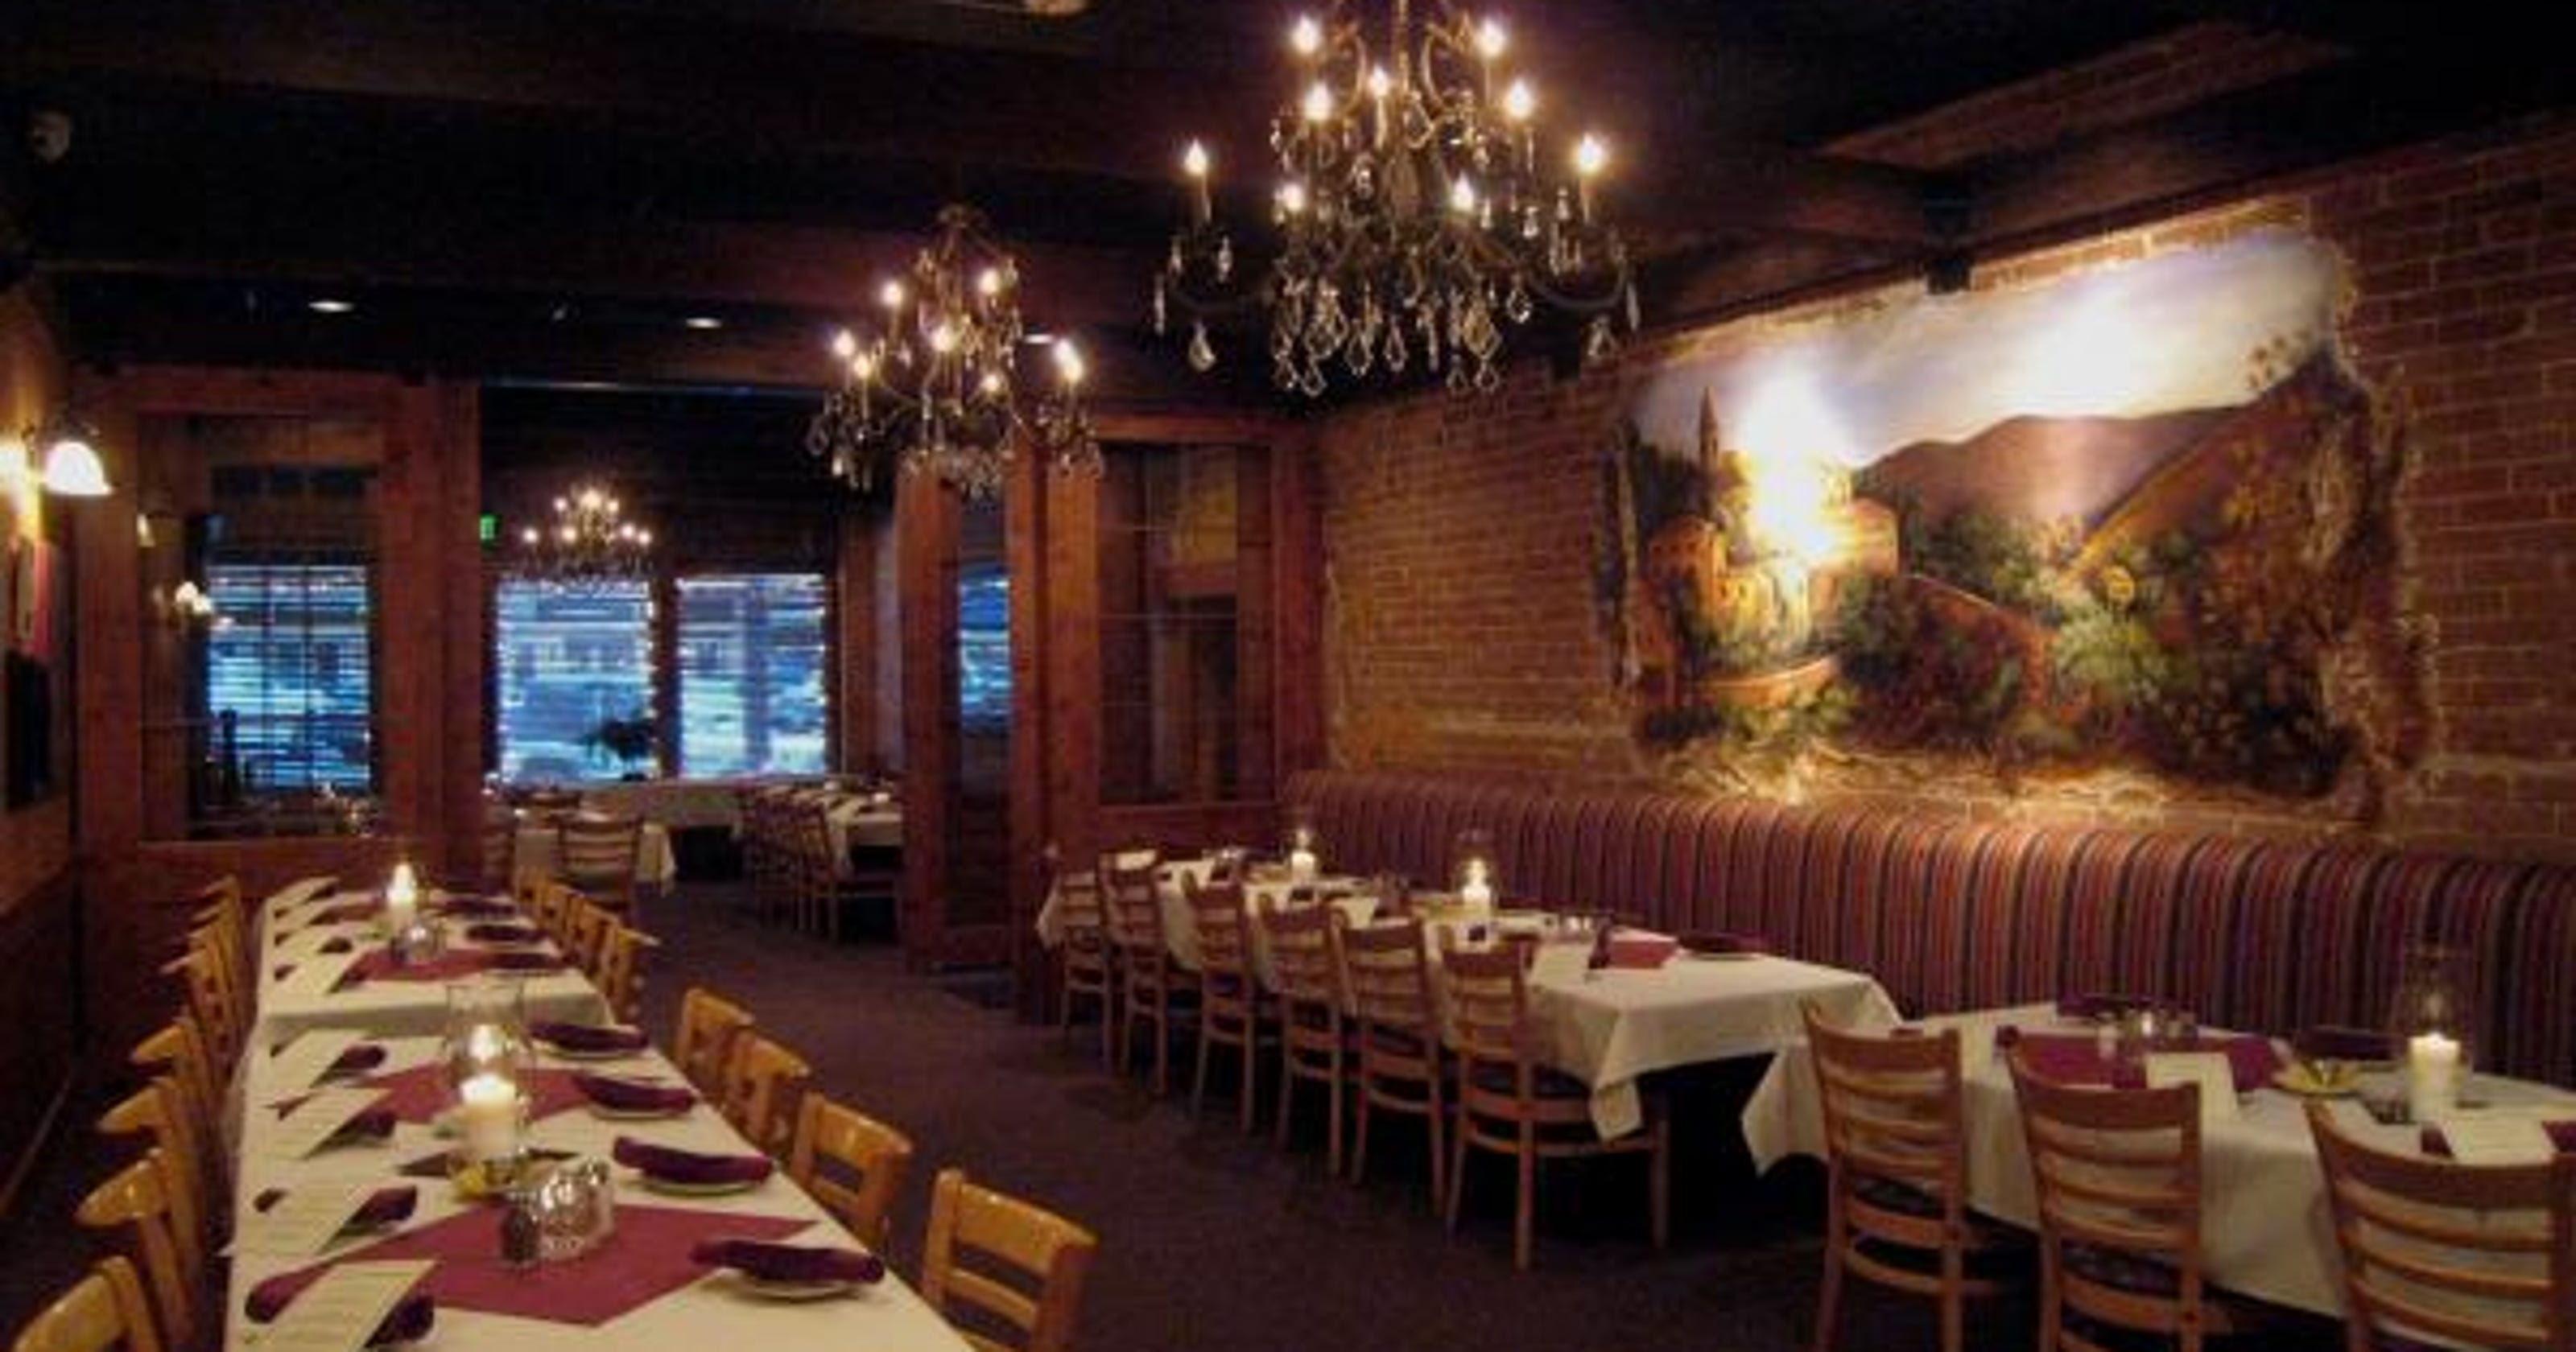 Top 10 Italian restaurants in Fort Collins